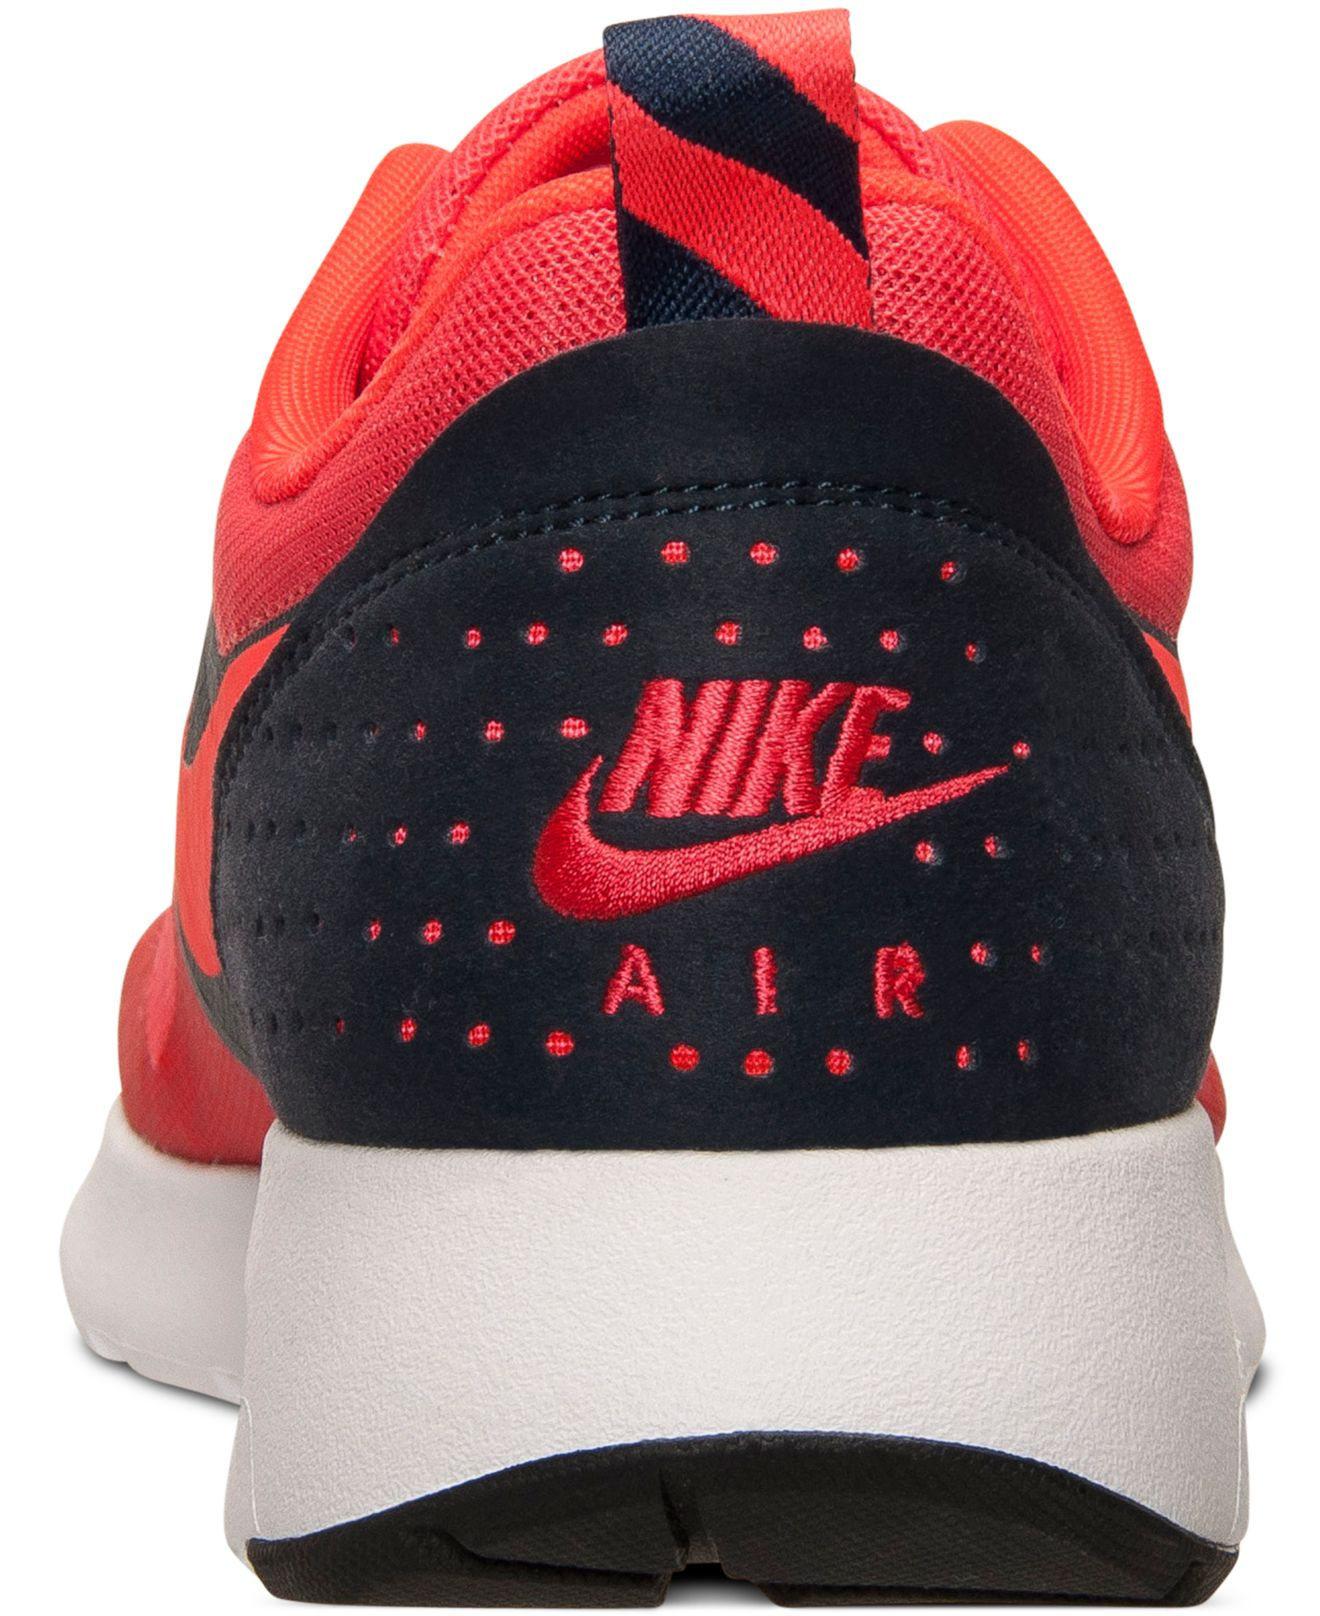 innovative design 2e87d aced6 ... Lyst - Nike Men s Air Max Tavas Running Sneakers From Finish Line in .  ...